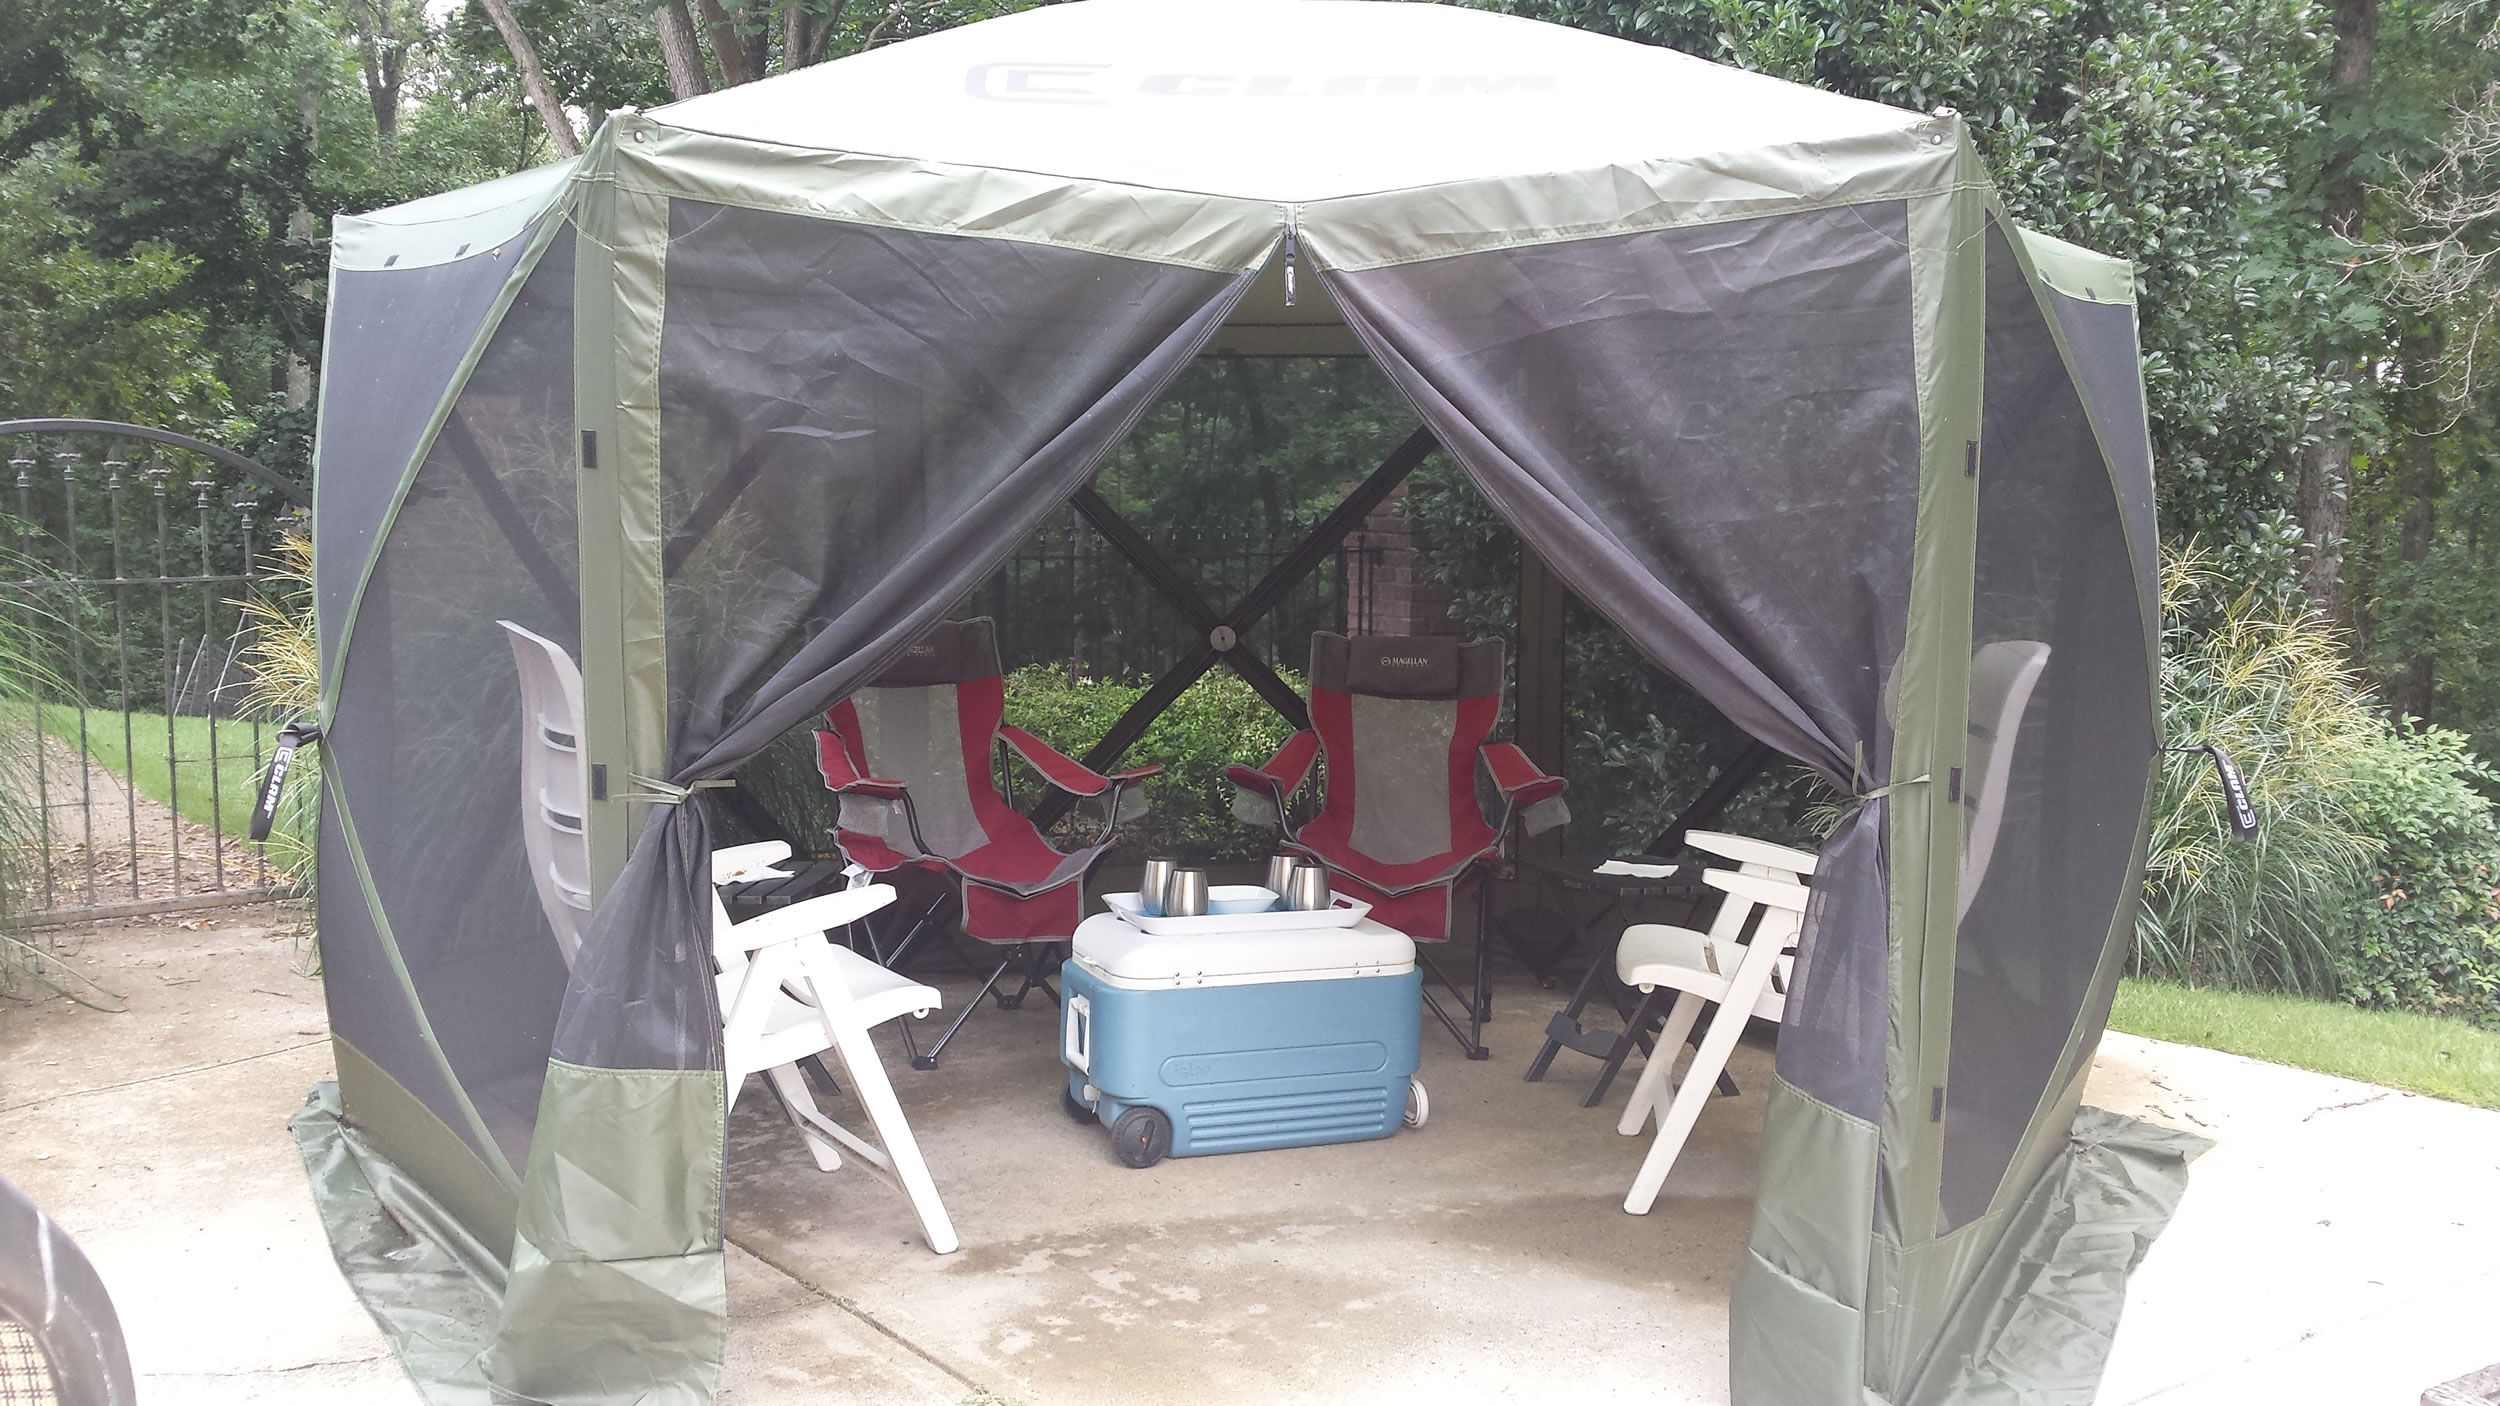 The Clam Screen Room Escape model is large enough for 4-6 chairs and a few side tables.